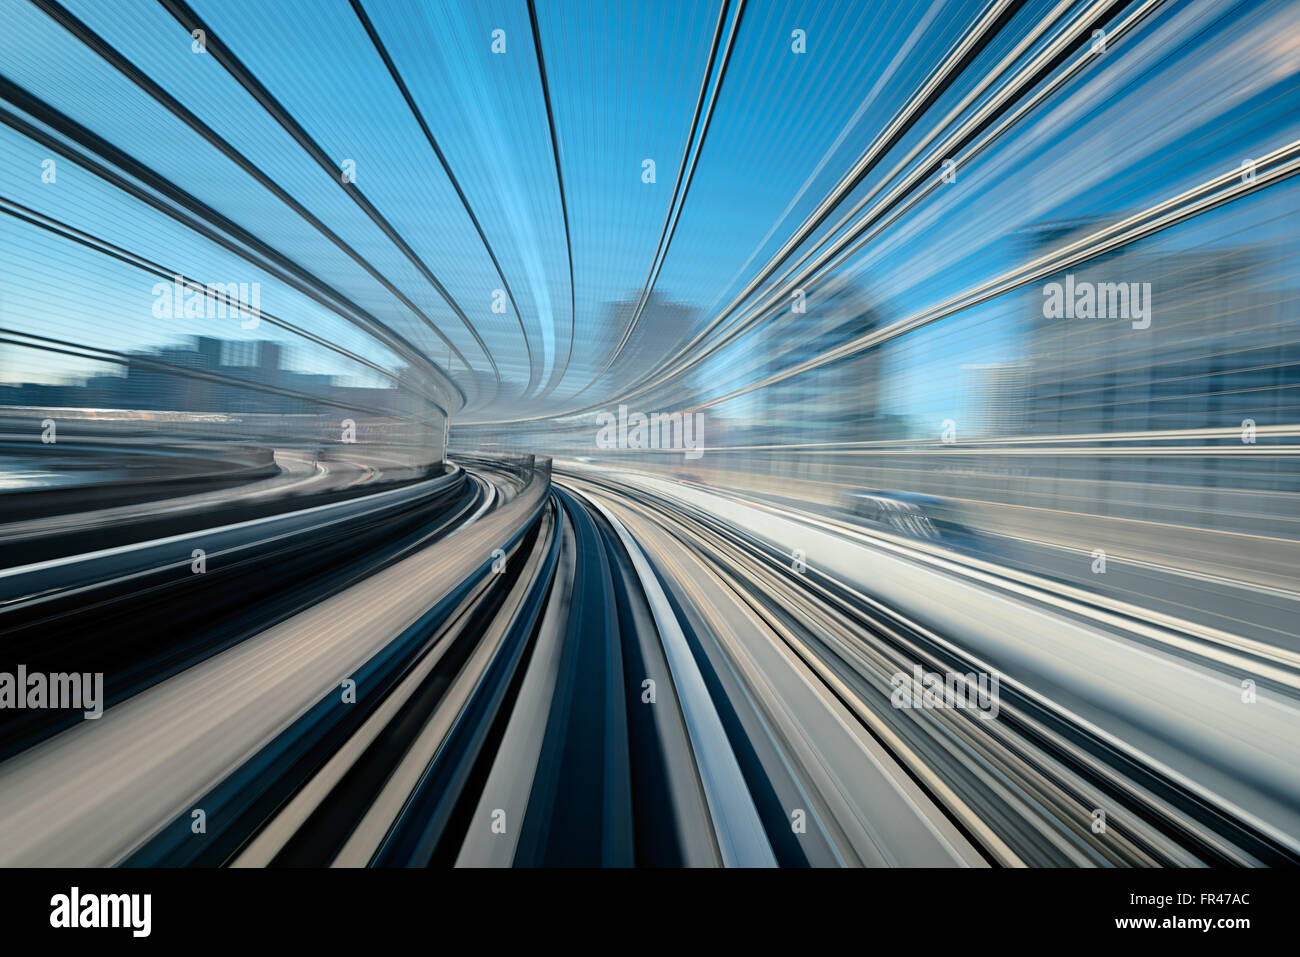 A blurred motion on the railway in Tokyo, Shiodome district. - Stock Image